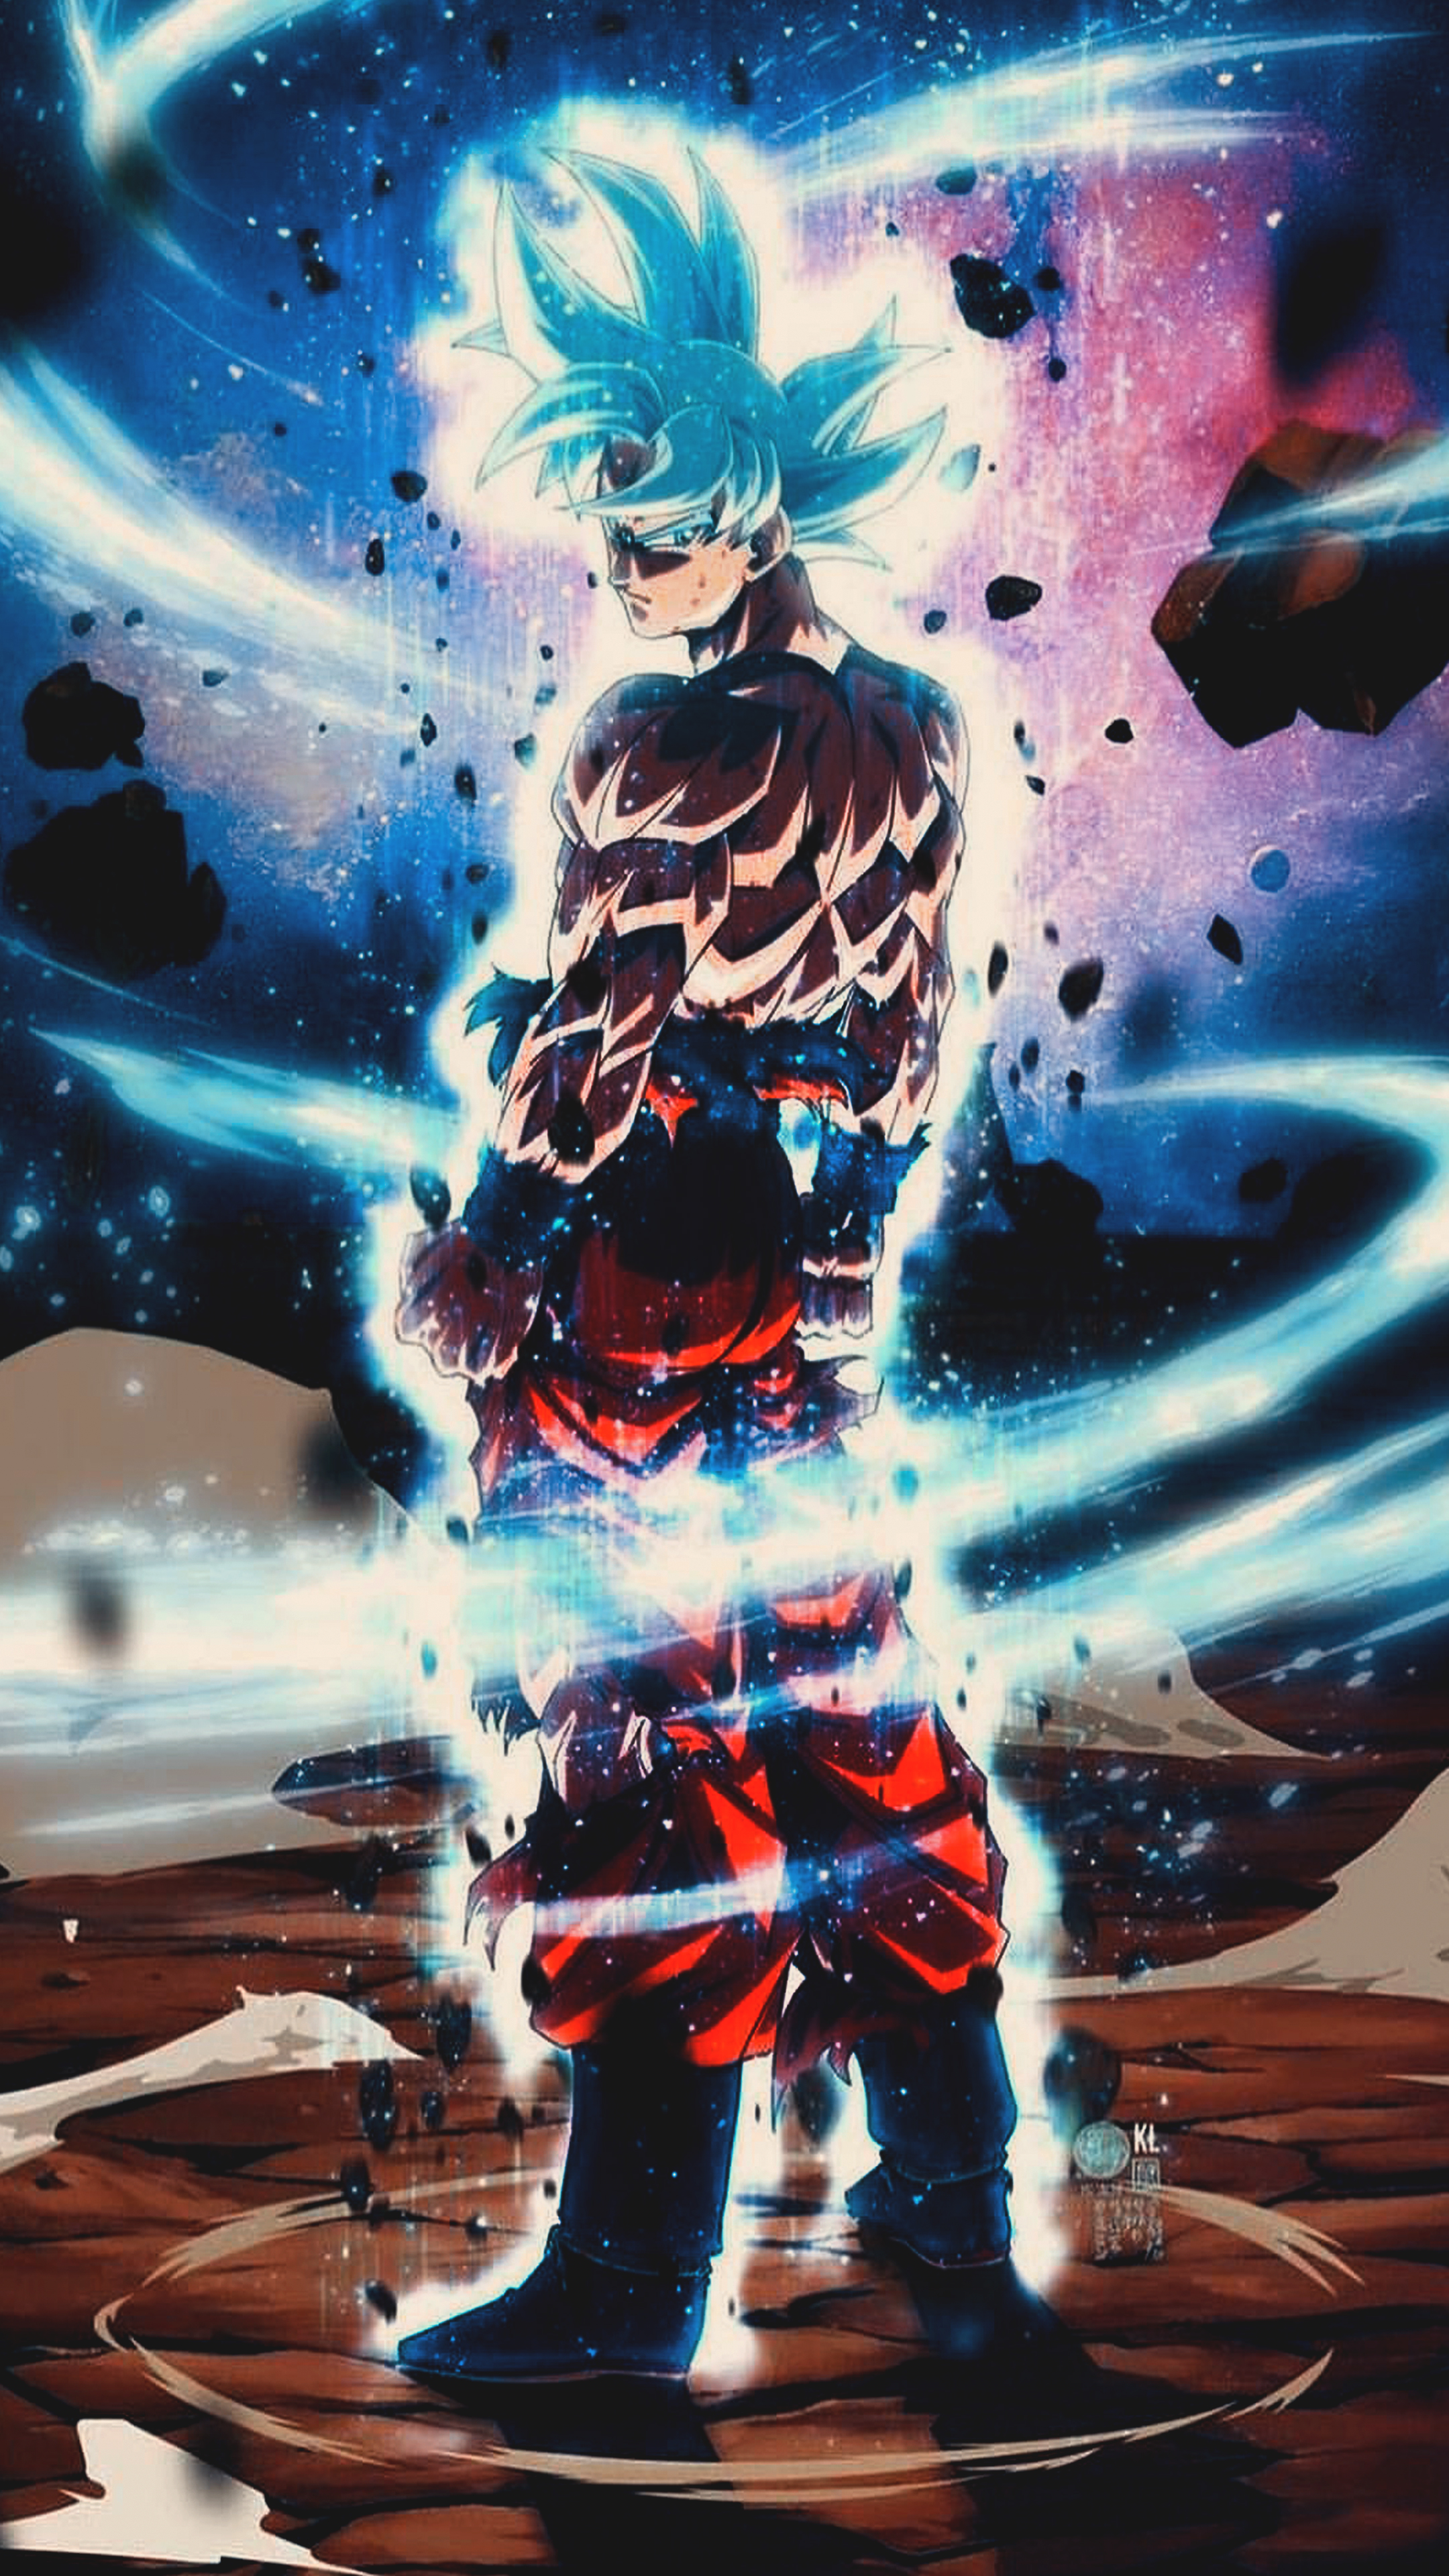 20 4k Wallpapers Of Dbz And Super For Phones Syanart Station